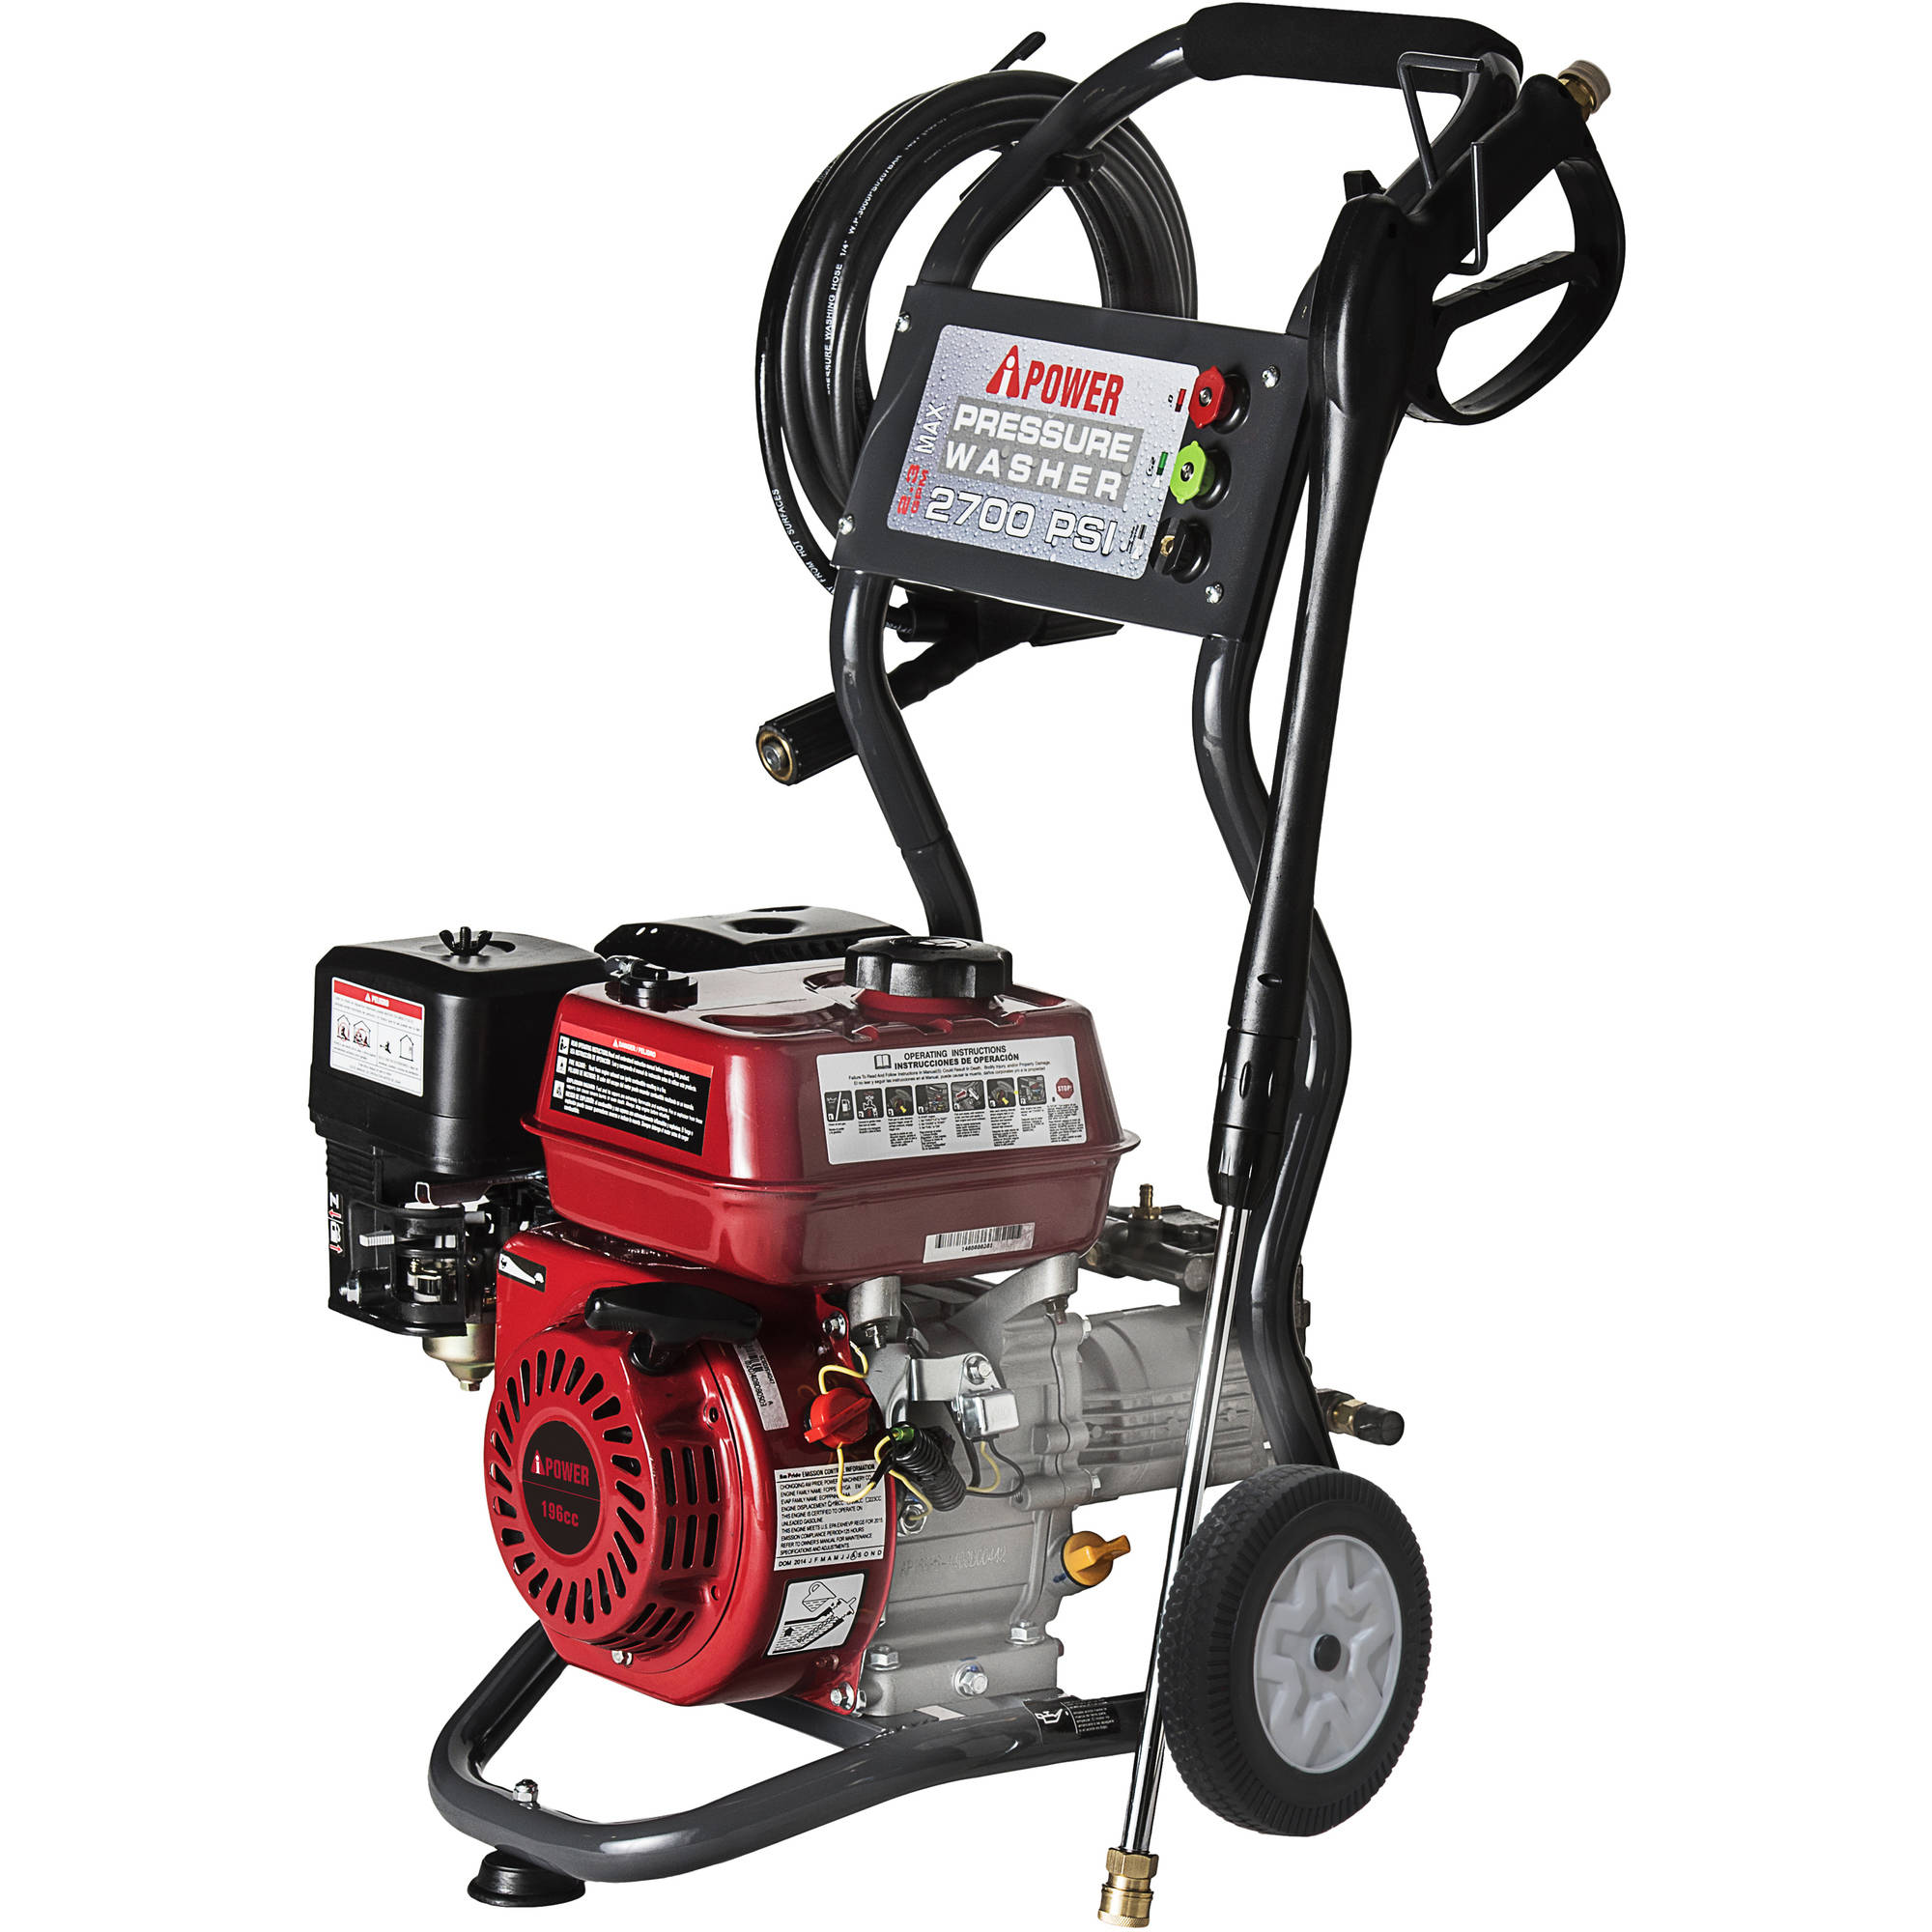 A Ipower 2700 Psi Gasoline Powered Pressure Washer